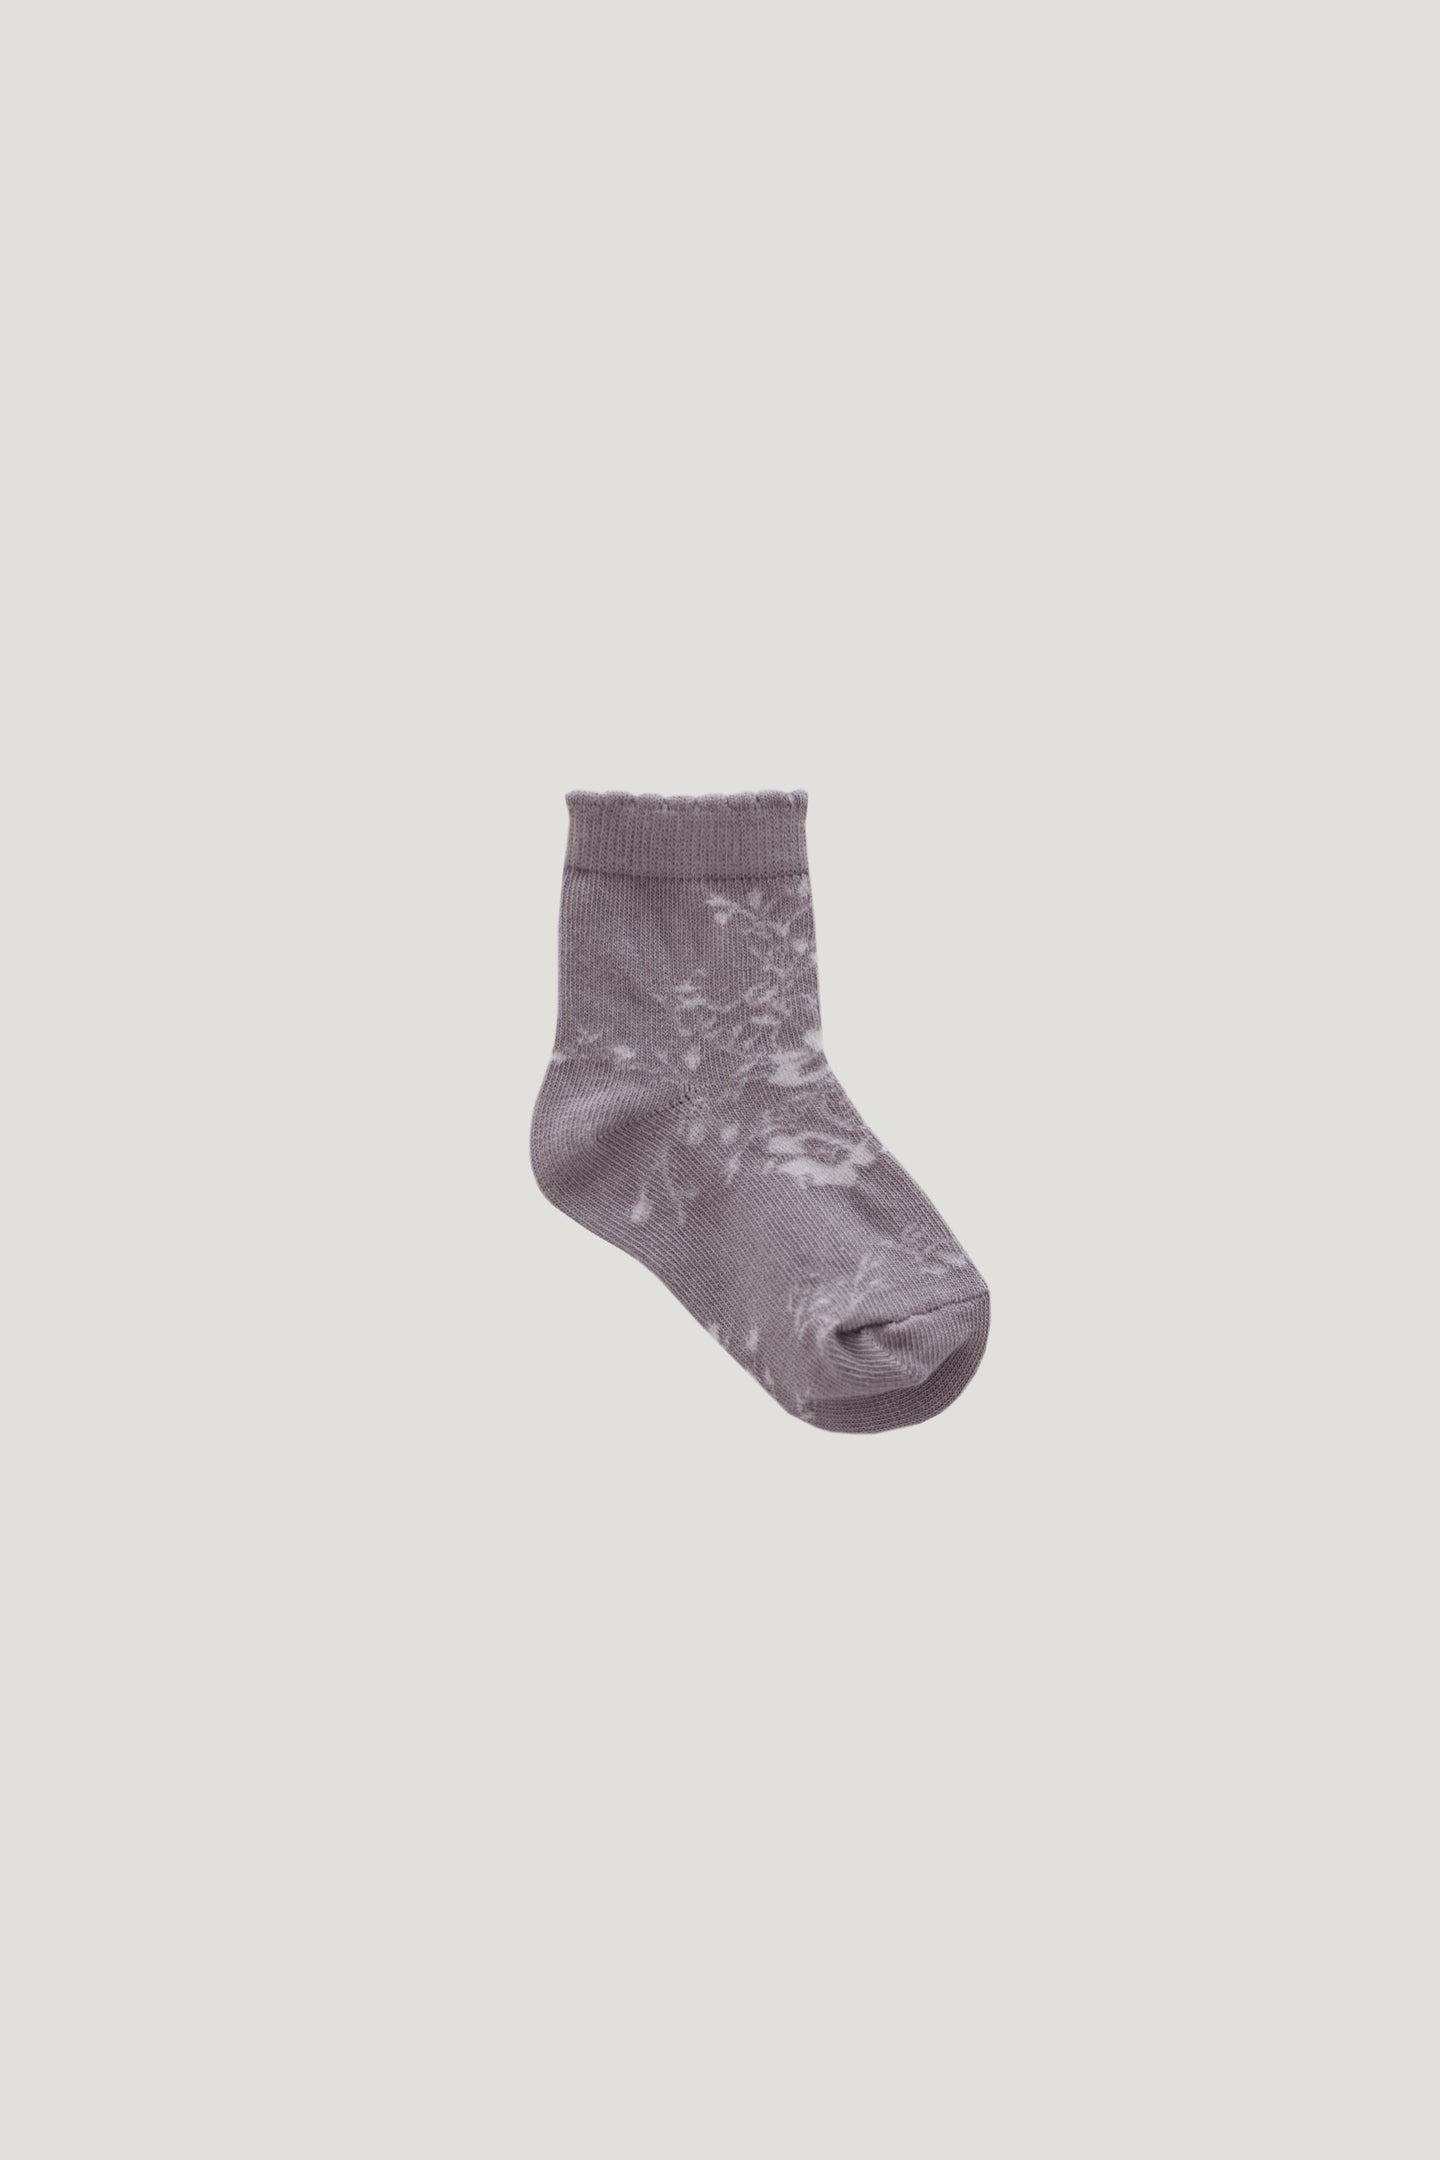 Jamie Kay - Emme Floral Sock - Fawn